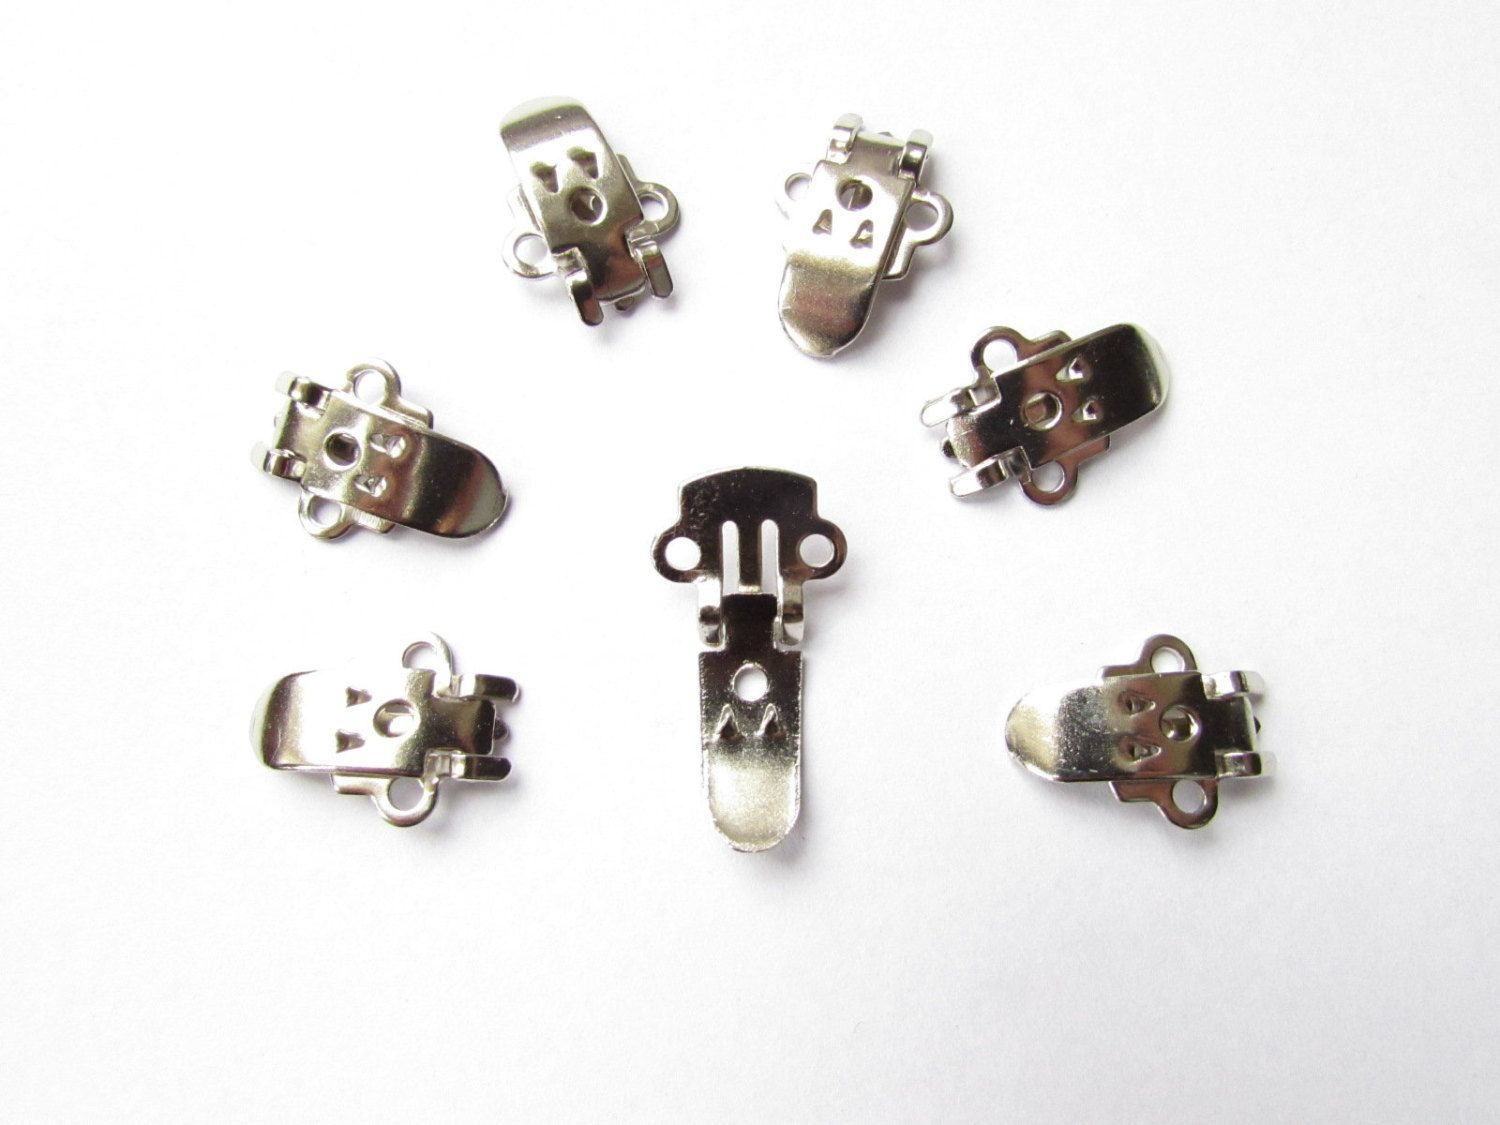 6 Blank Stainless Steel Shoe Clips - DIY Shoe Clips - Mke your own shoe clips - Silver-tone blank shoe clips - Shoe Makeover - Shoeclips UK